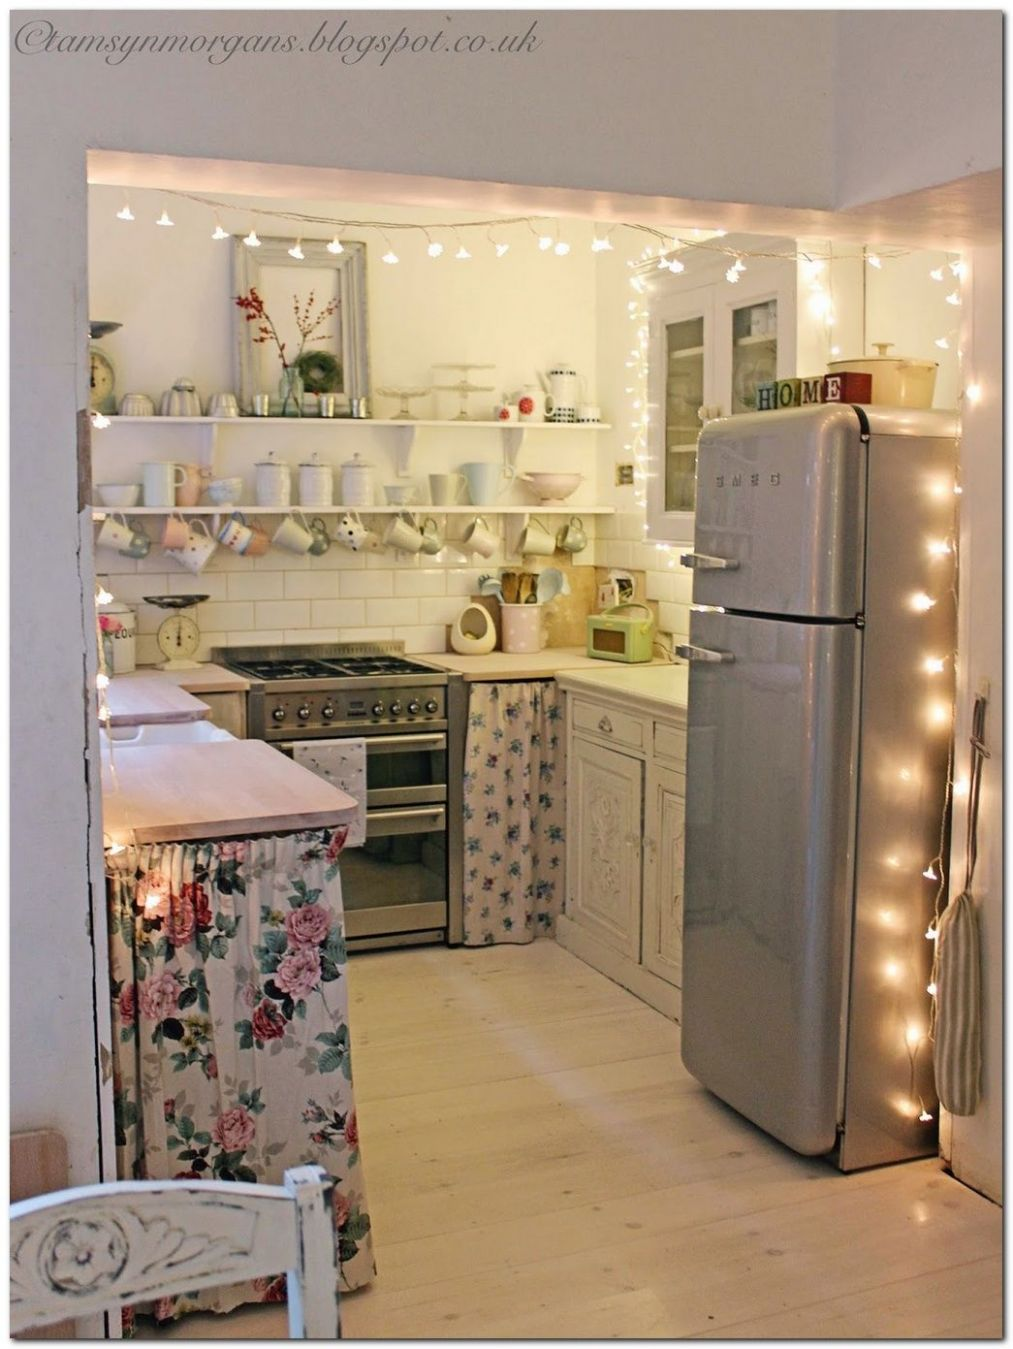 10+ Ideas to Decorate Small Apartment on a Budget (With images ...